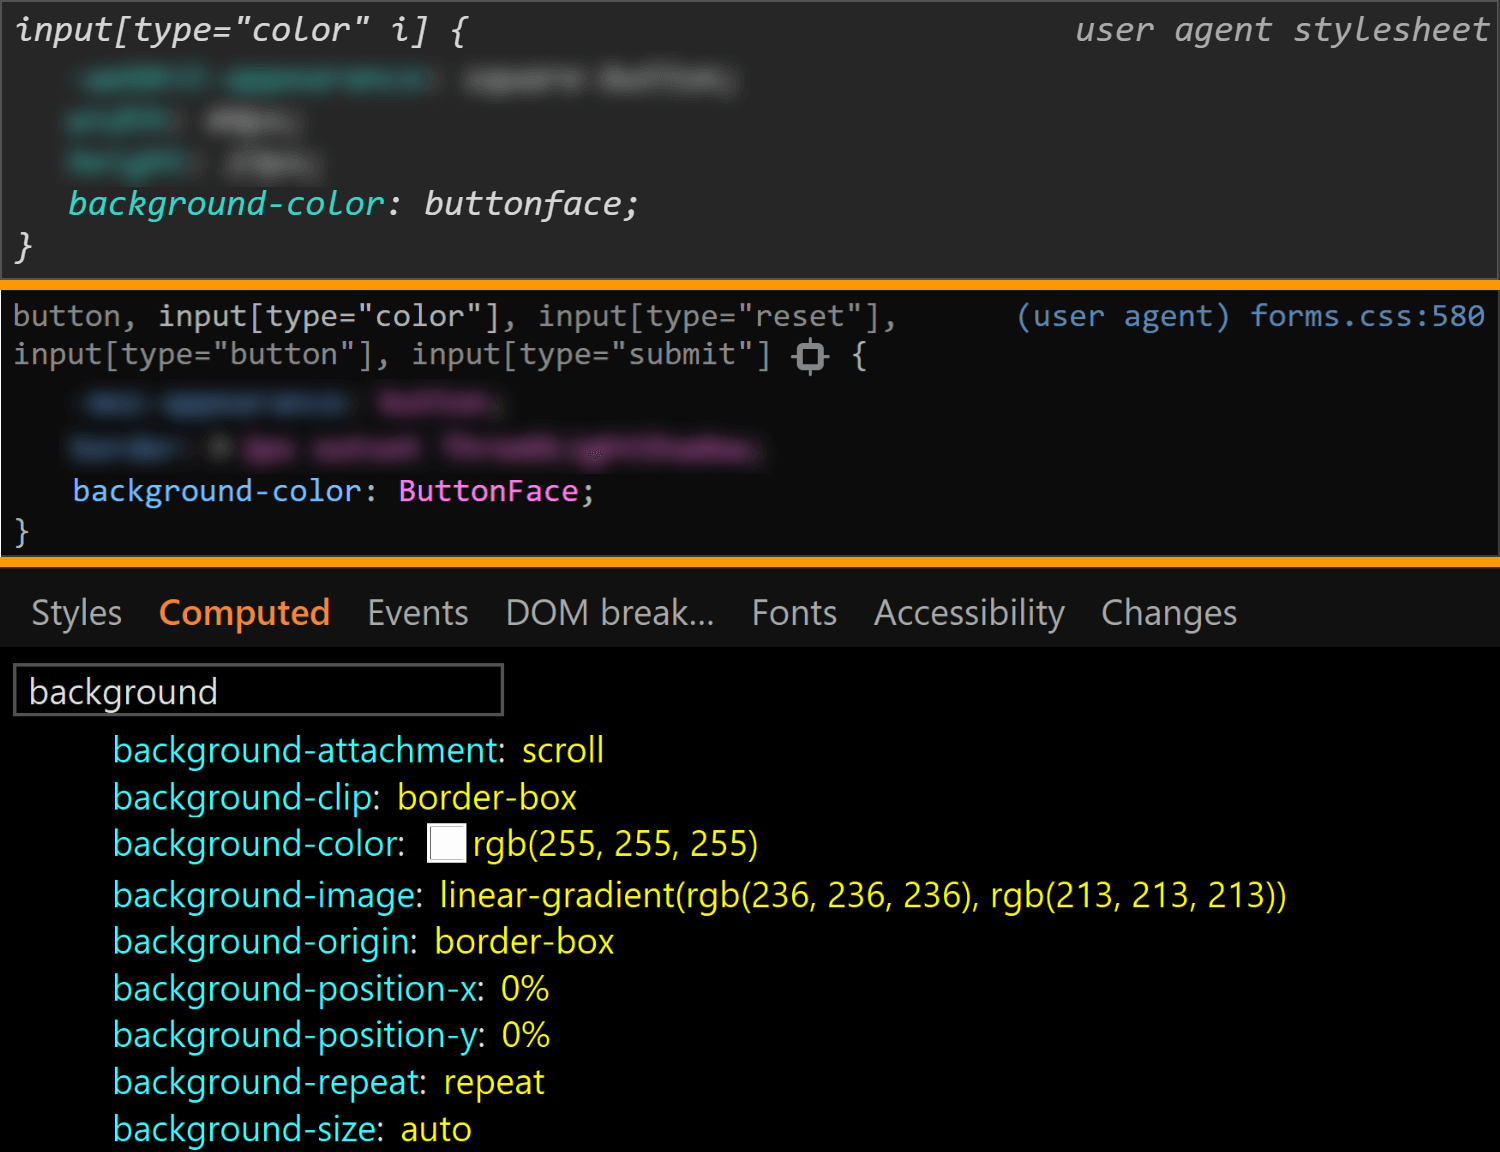 Comparative screenshots of DevTools in the three browsers showing the background values for the actual input.